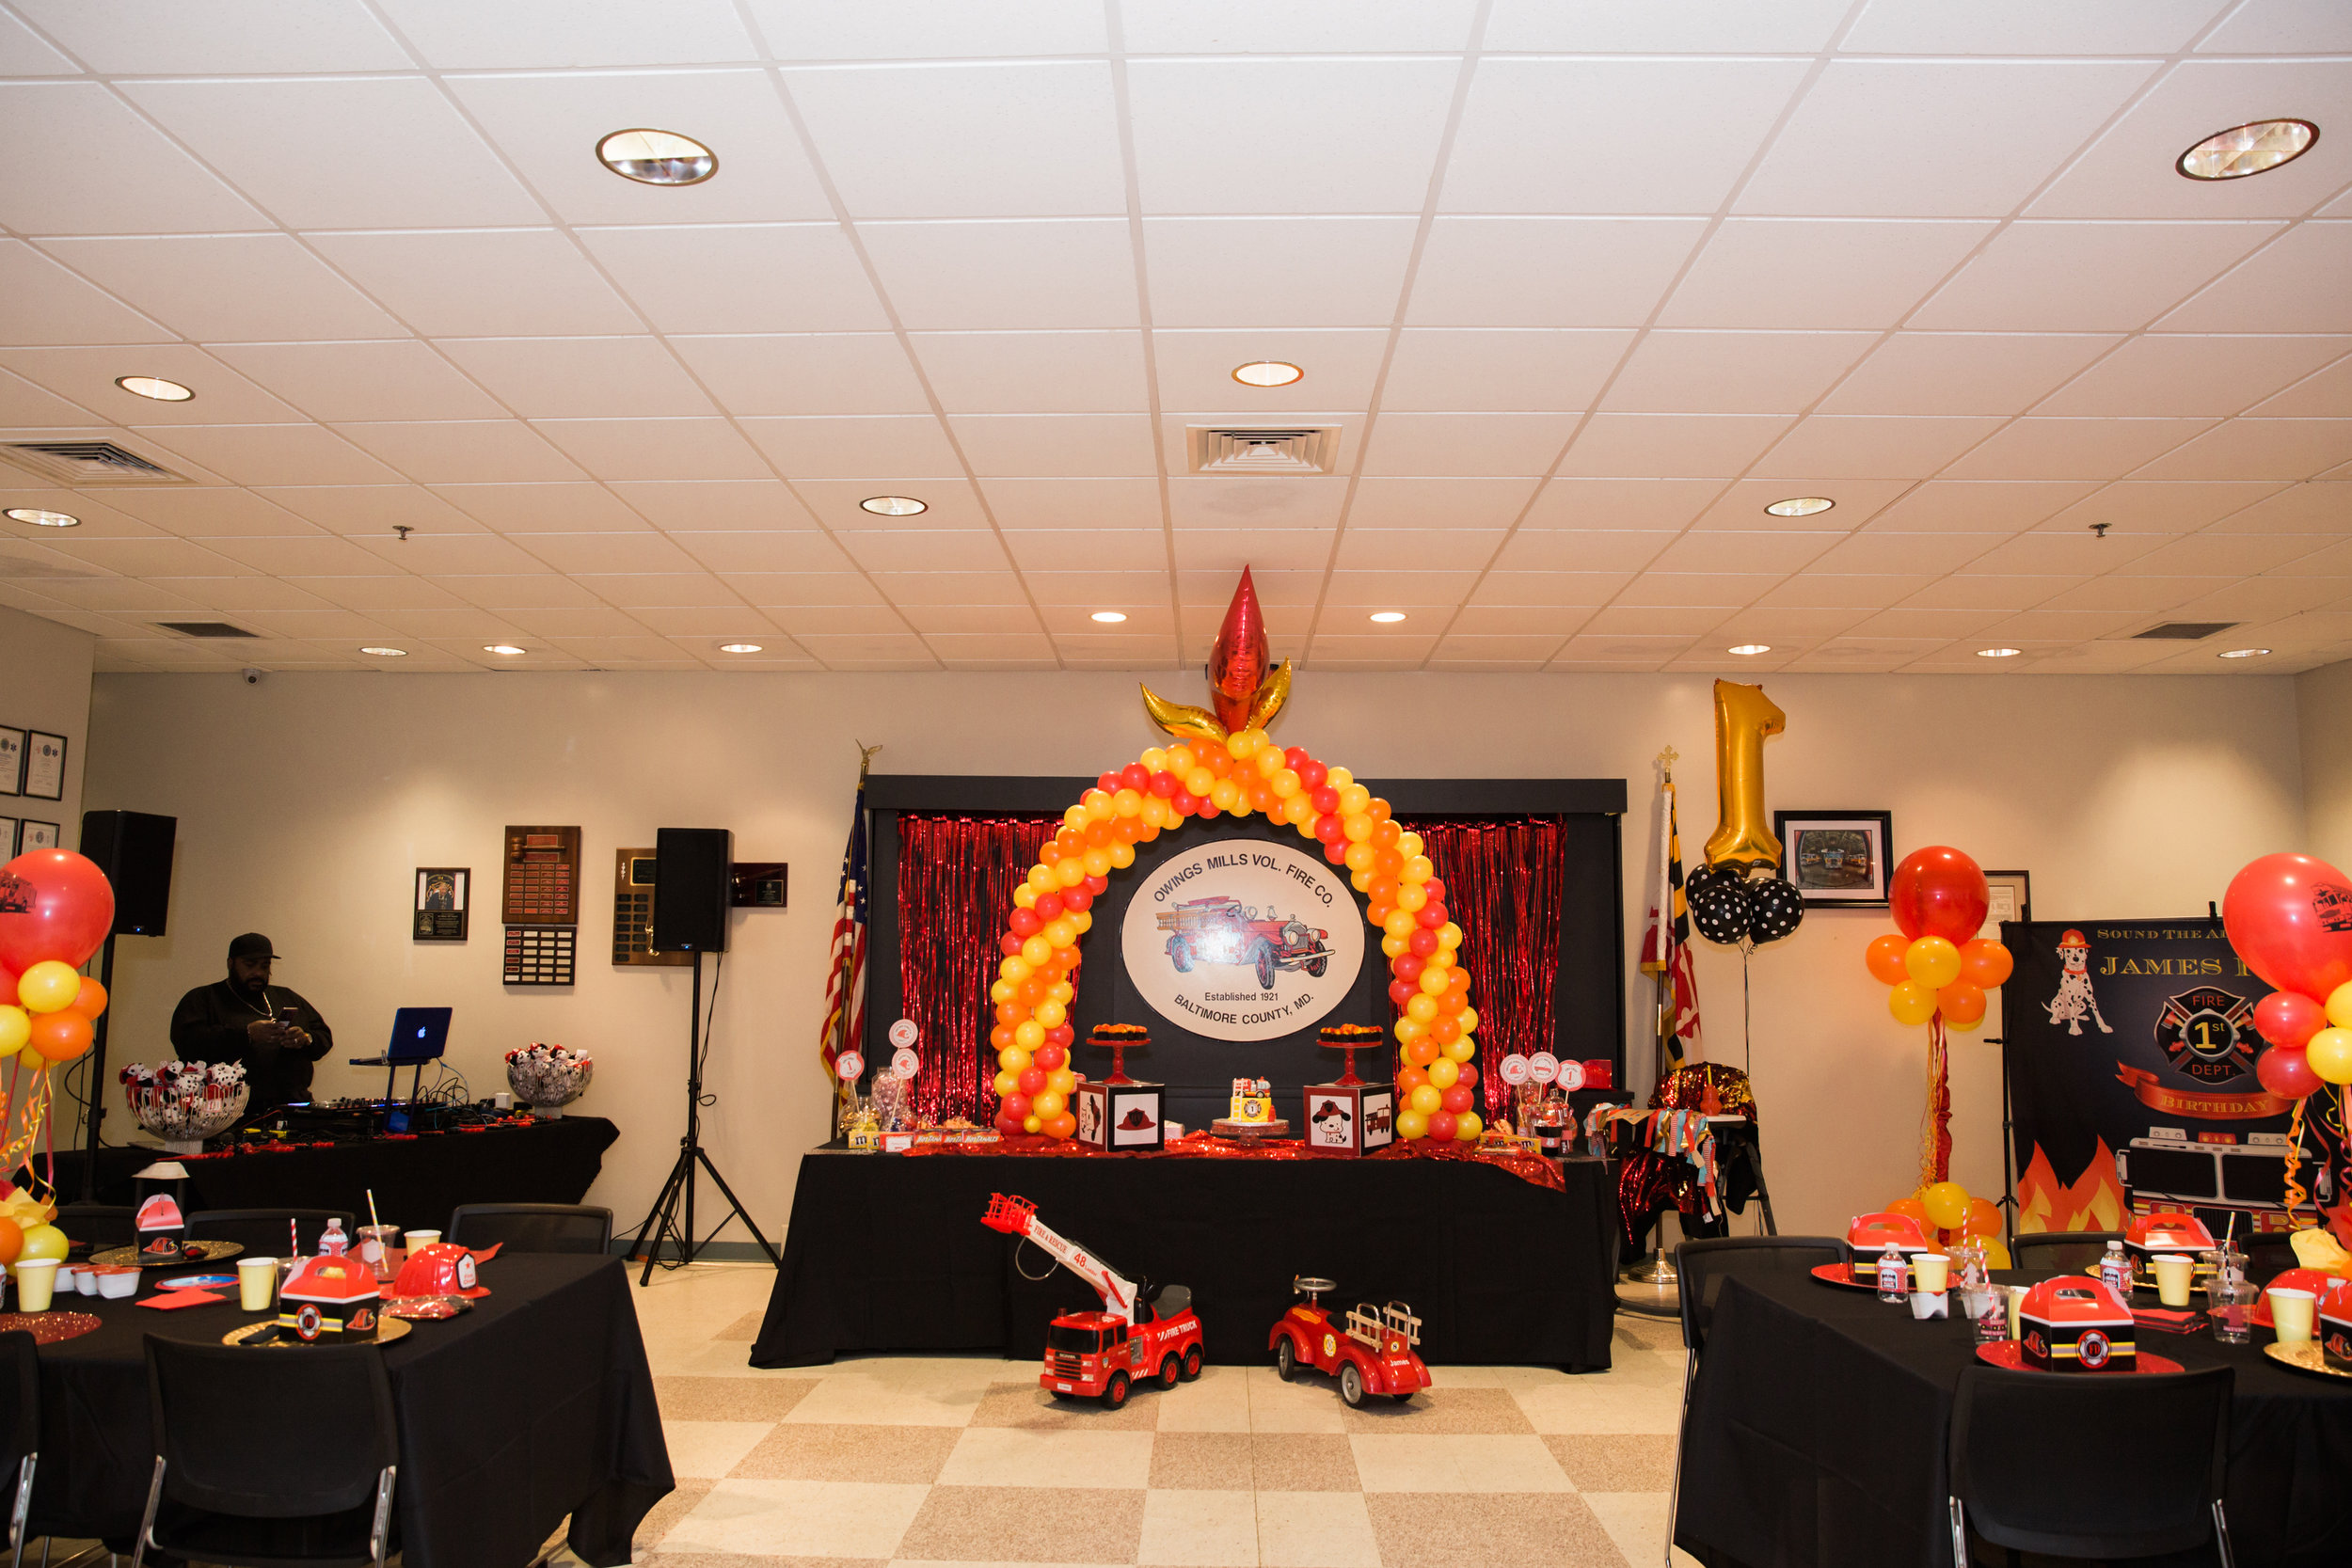 Fireman Birthday Party Ideas  Decorations Owings Mills Fire Department Maryland Family Photographers Megapixels Media Photography (37 of 55).jpg